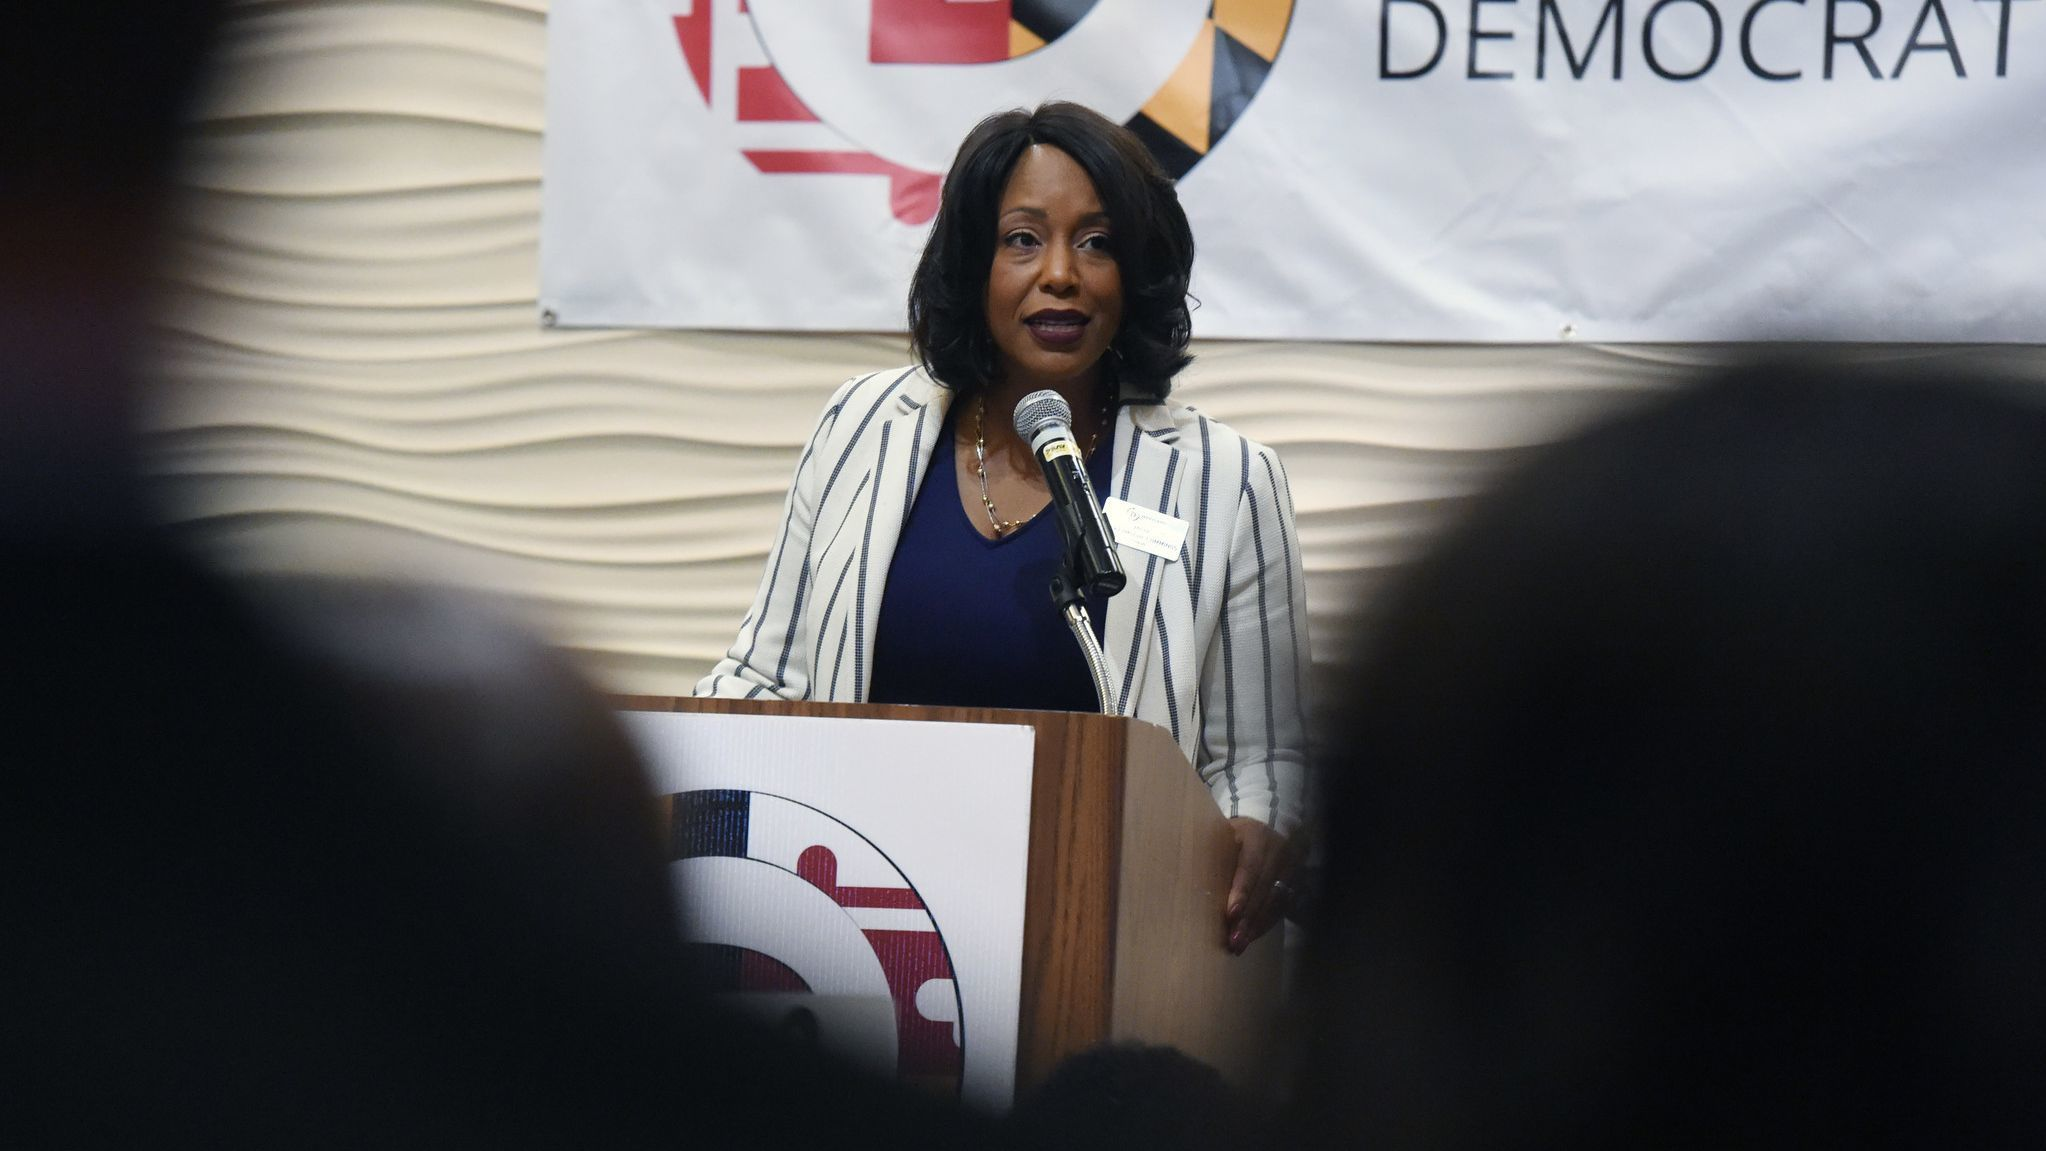 Conservative group accuses Rockeymoore Cummings of IRS violations; she says complaint is full of 'lies'